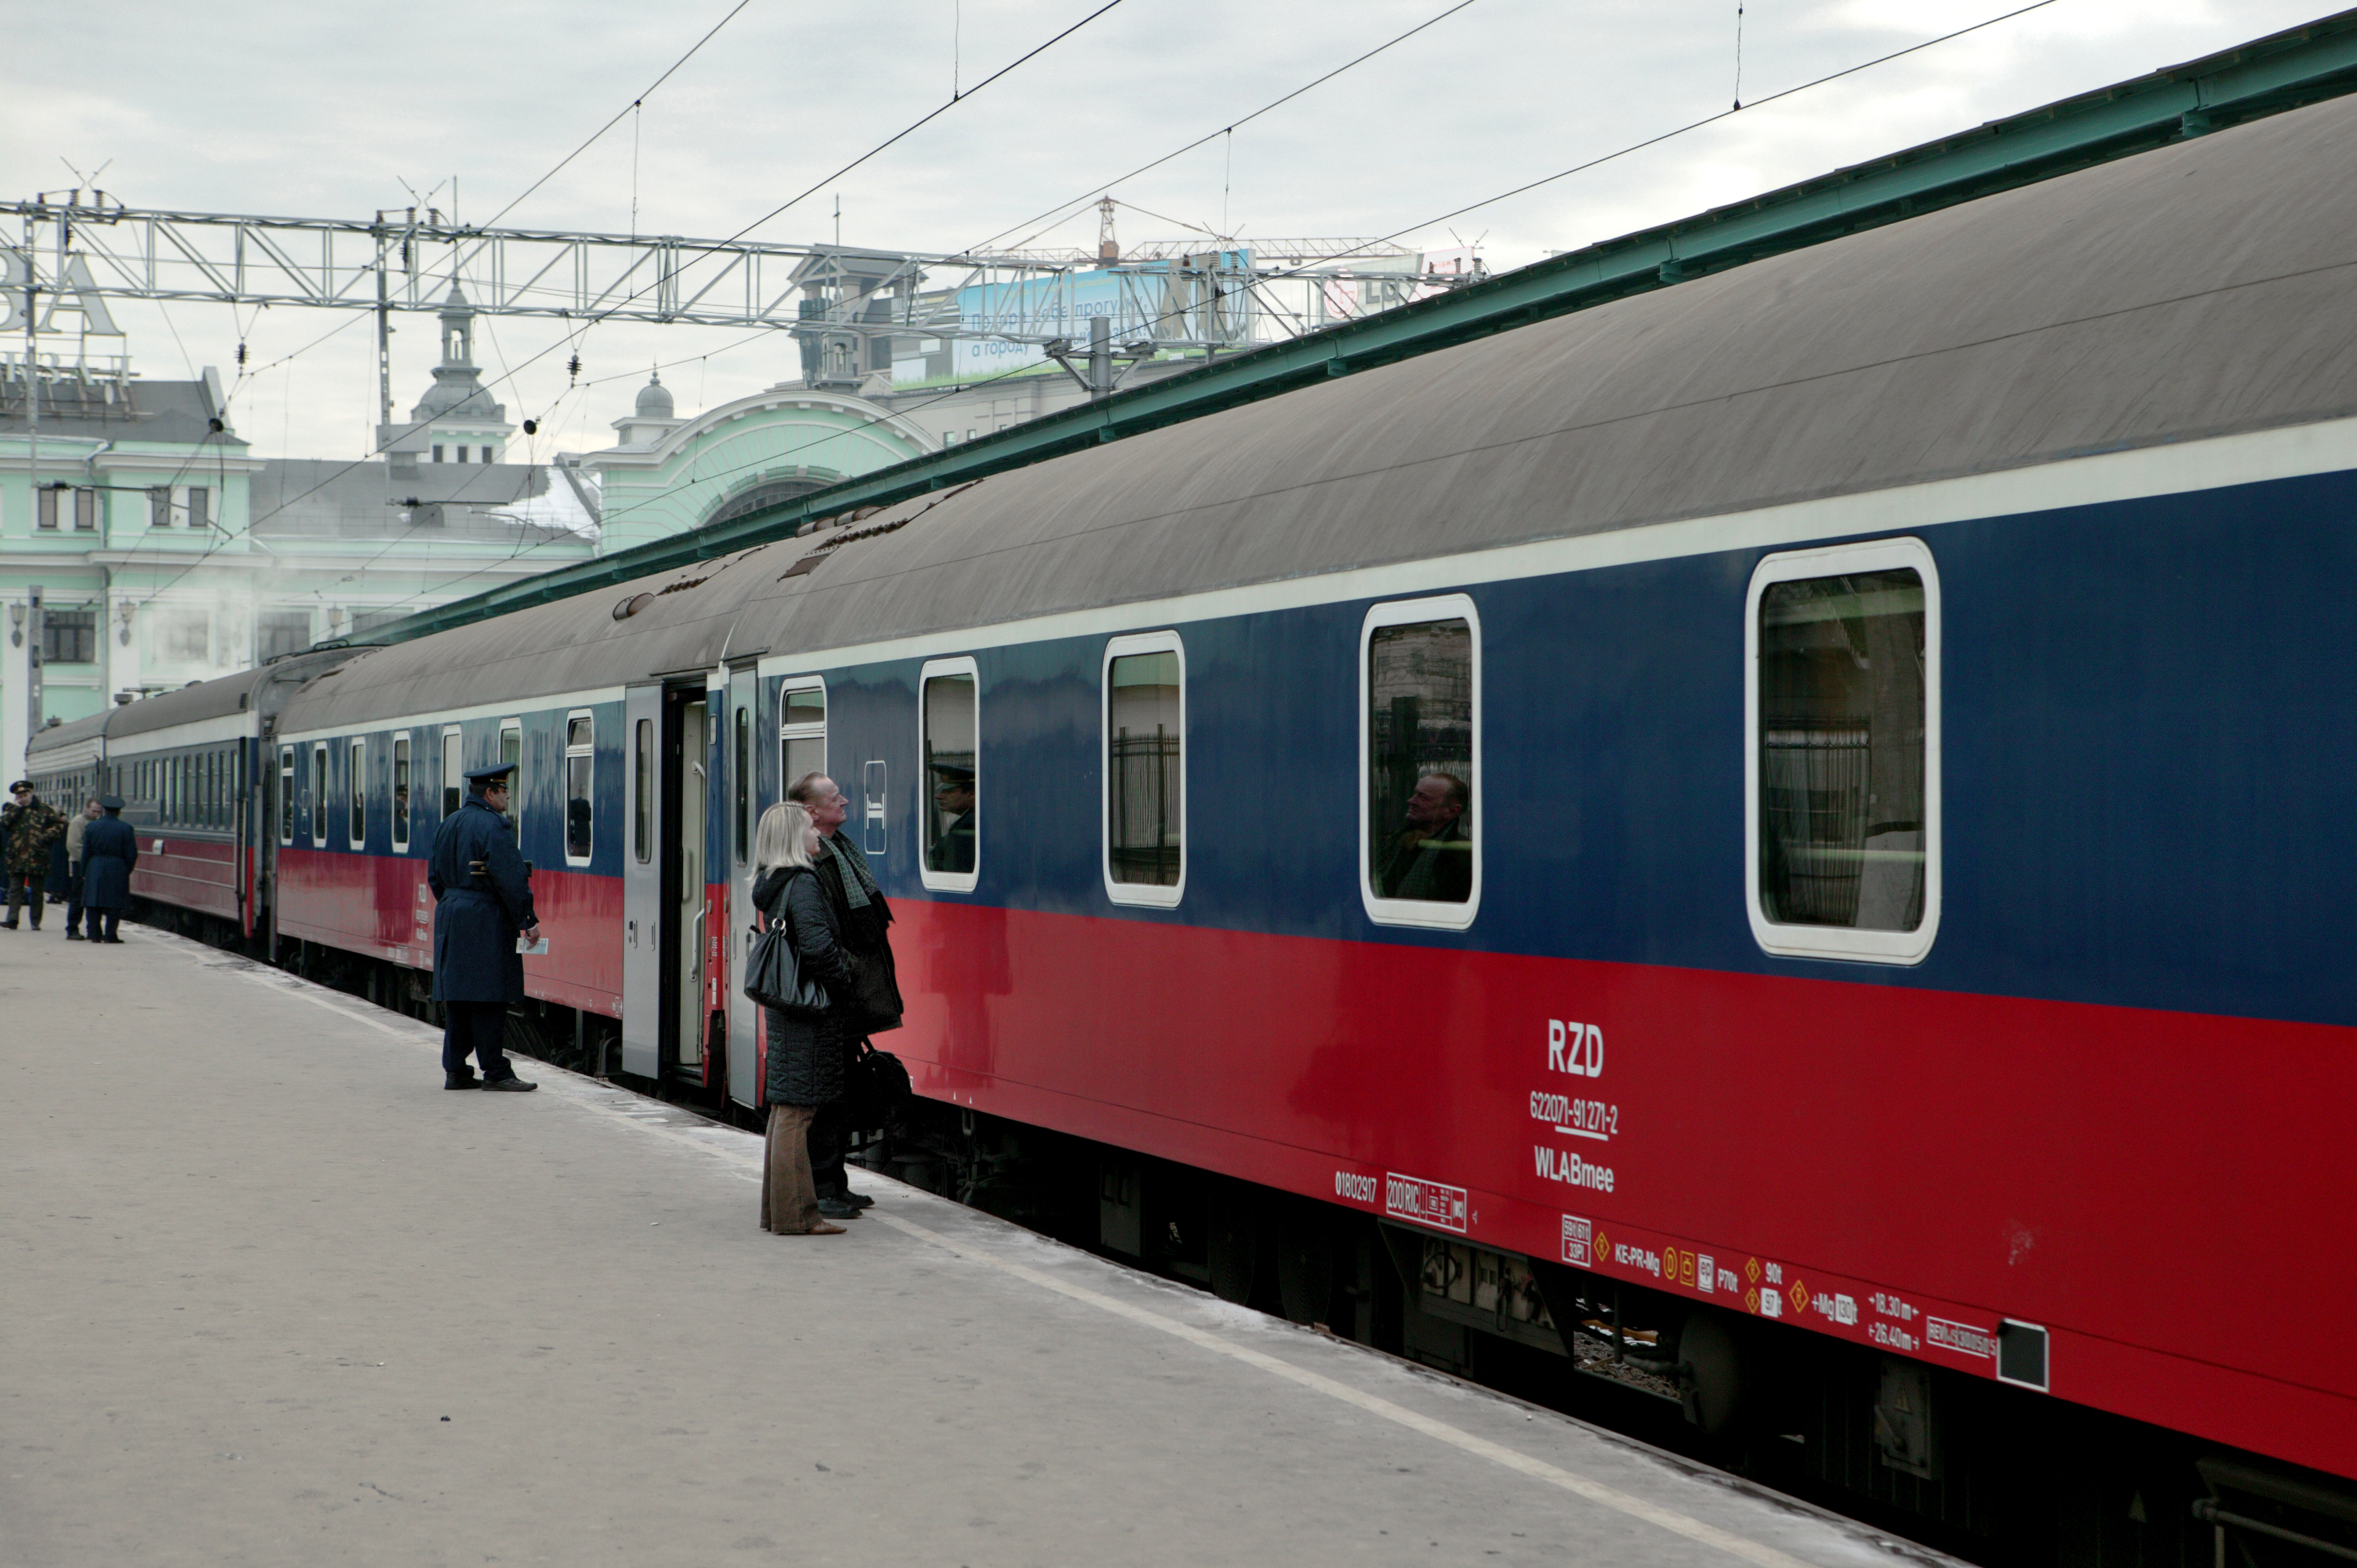 Tver Carriage Works - the main in Russia by carriages